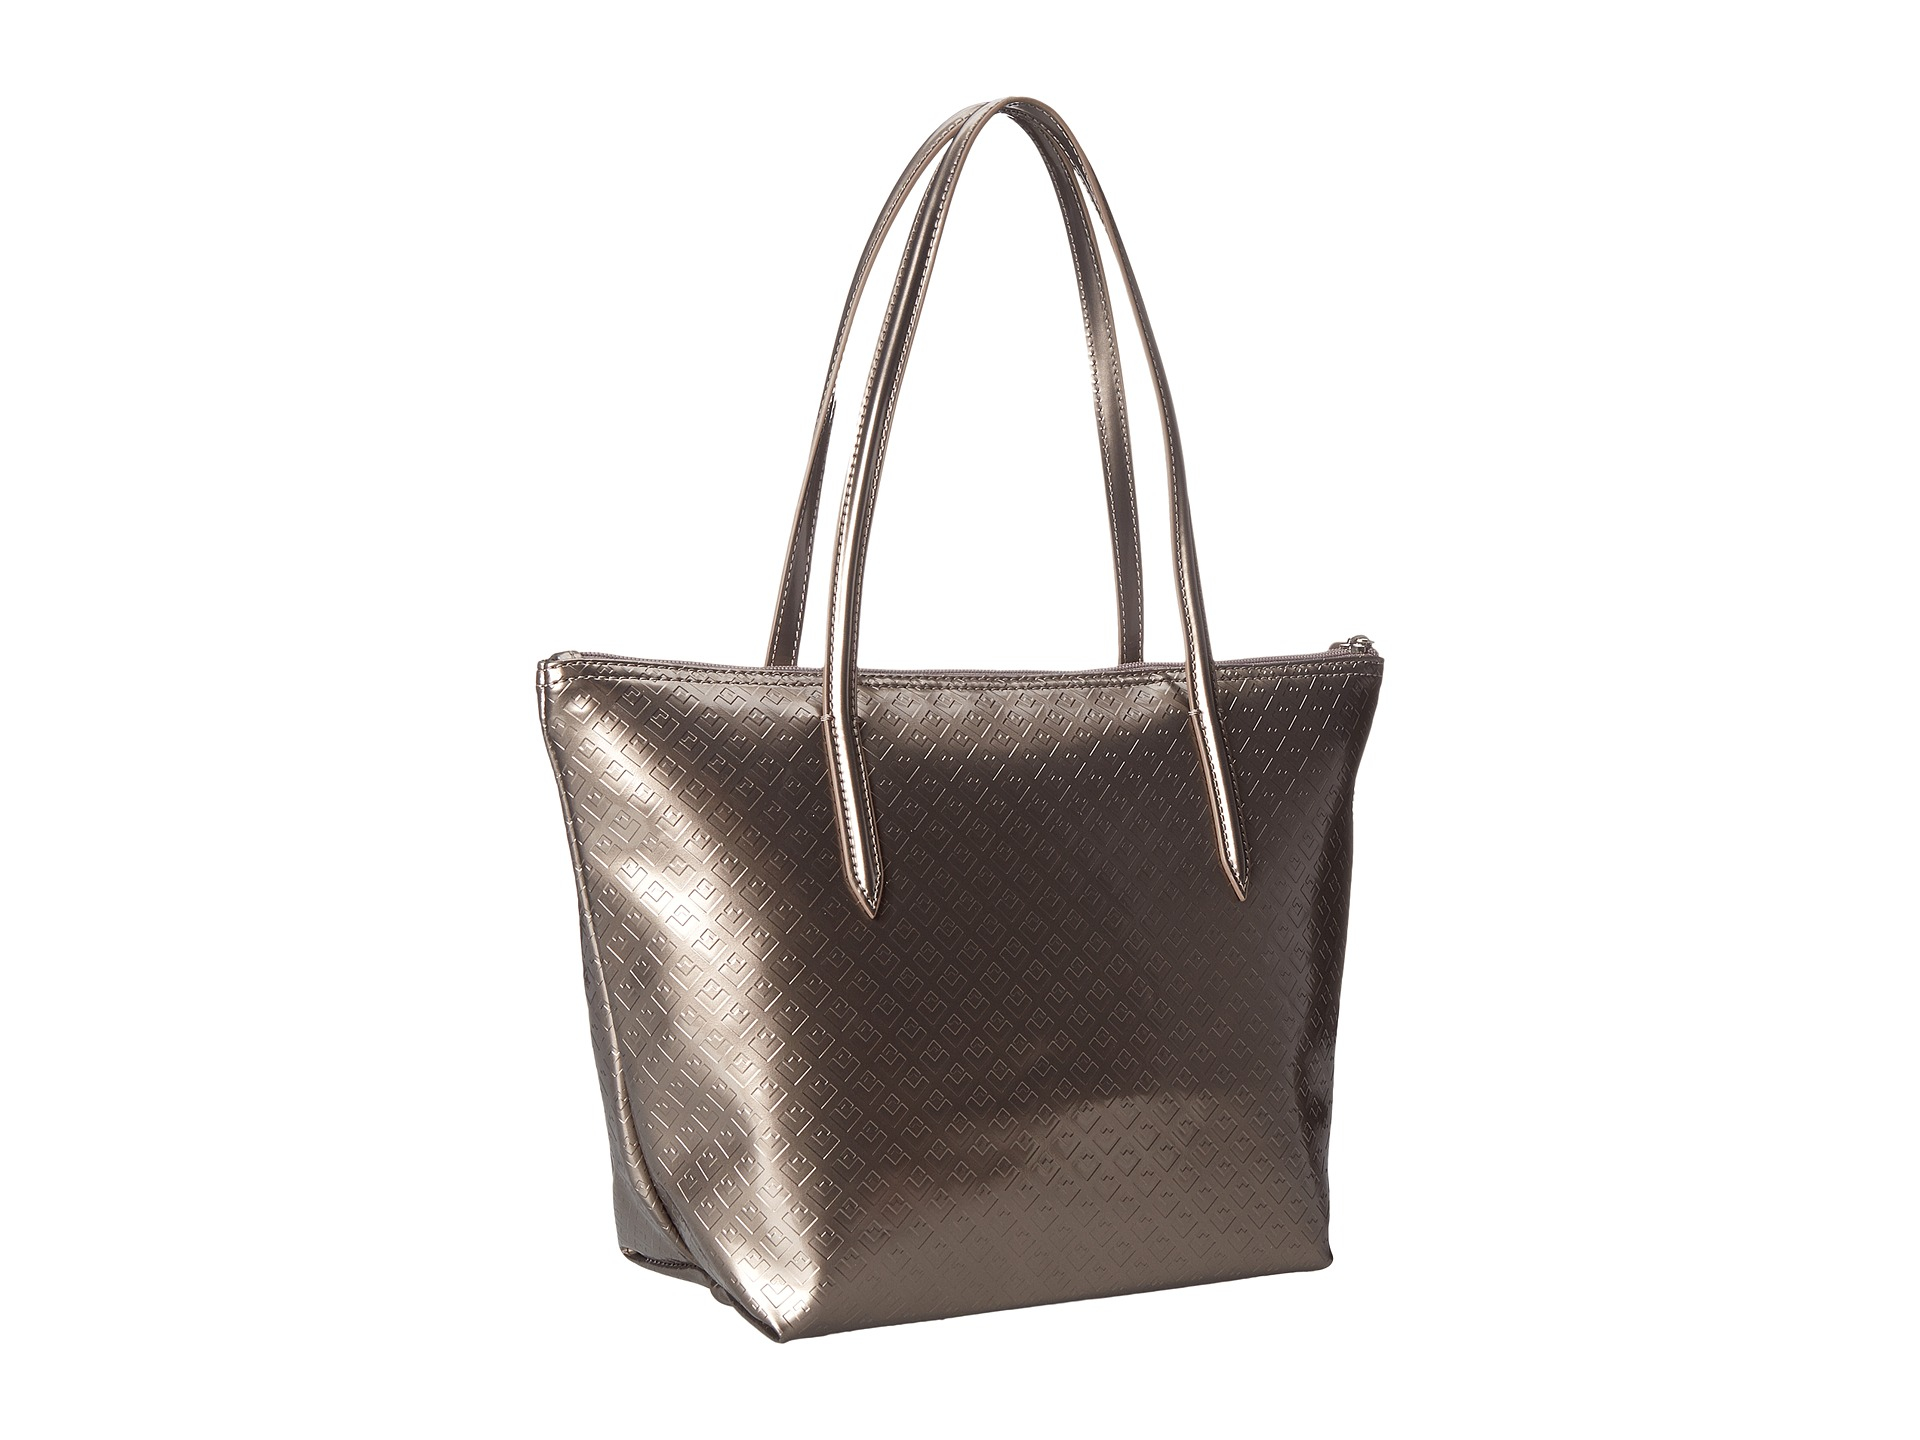 db822b423d4 Lacoste L.12.12 Concept Shiny Tote Bag in Metallic - Lyst